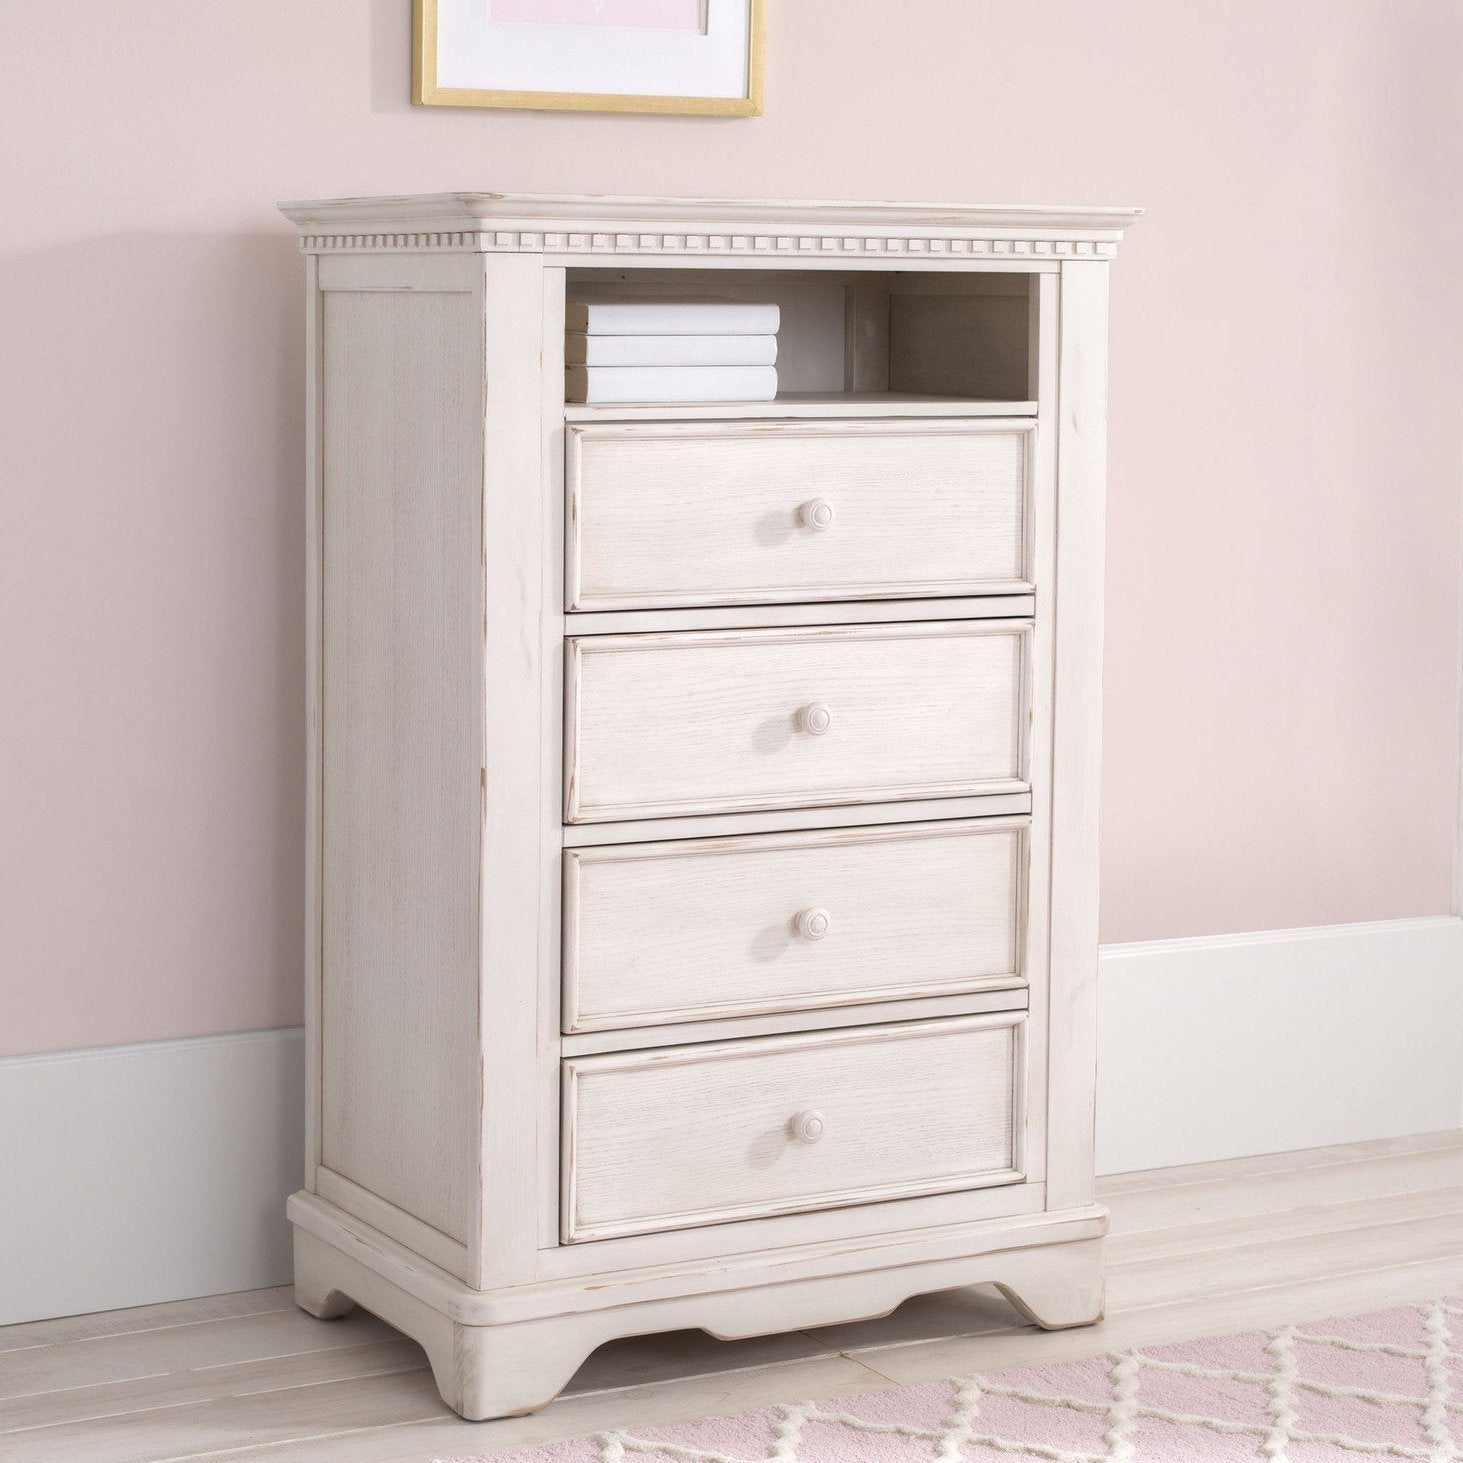 Tivoli 4 Drawer Chest with Cubby